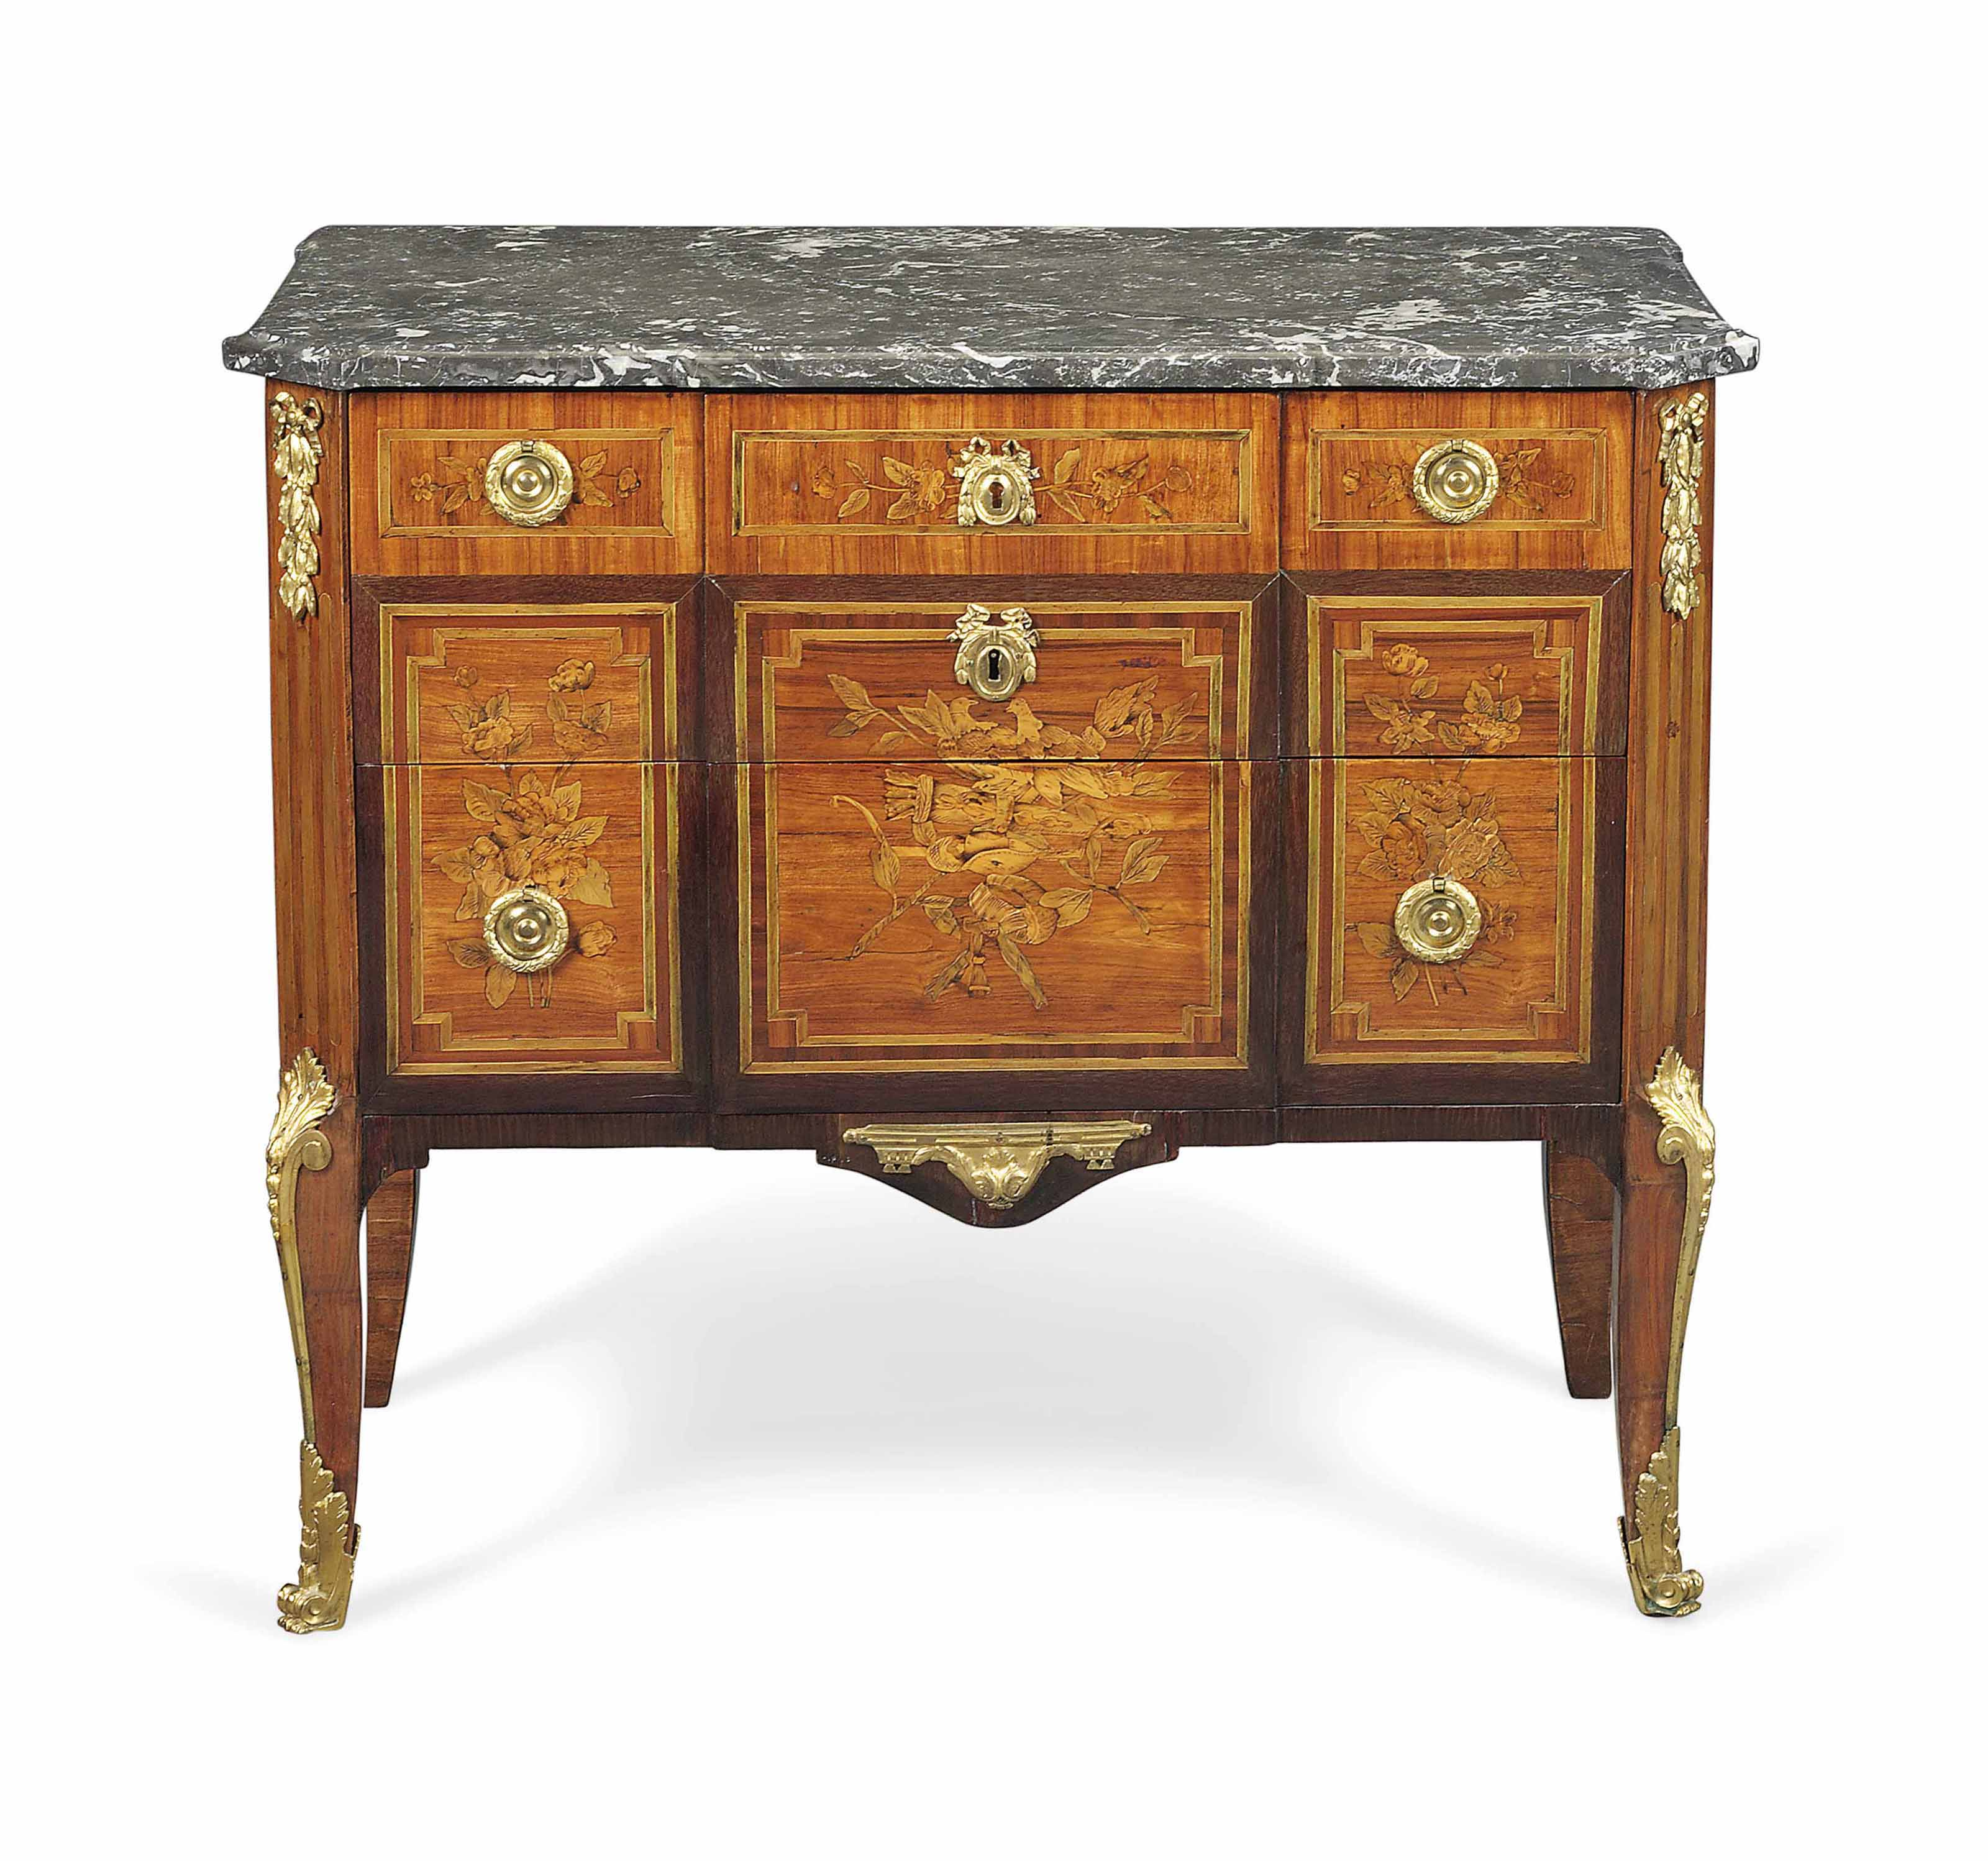 A LOUIS XVI ORMOLU-MOUNTED AMARANTH, TULIPWOOD AND FRUITWOOD MARQUETRY COMMODE